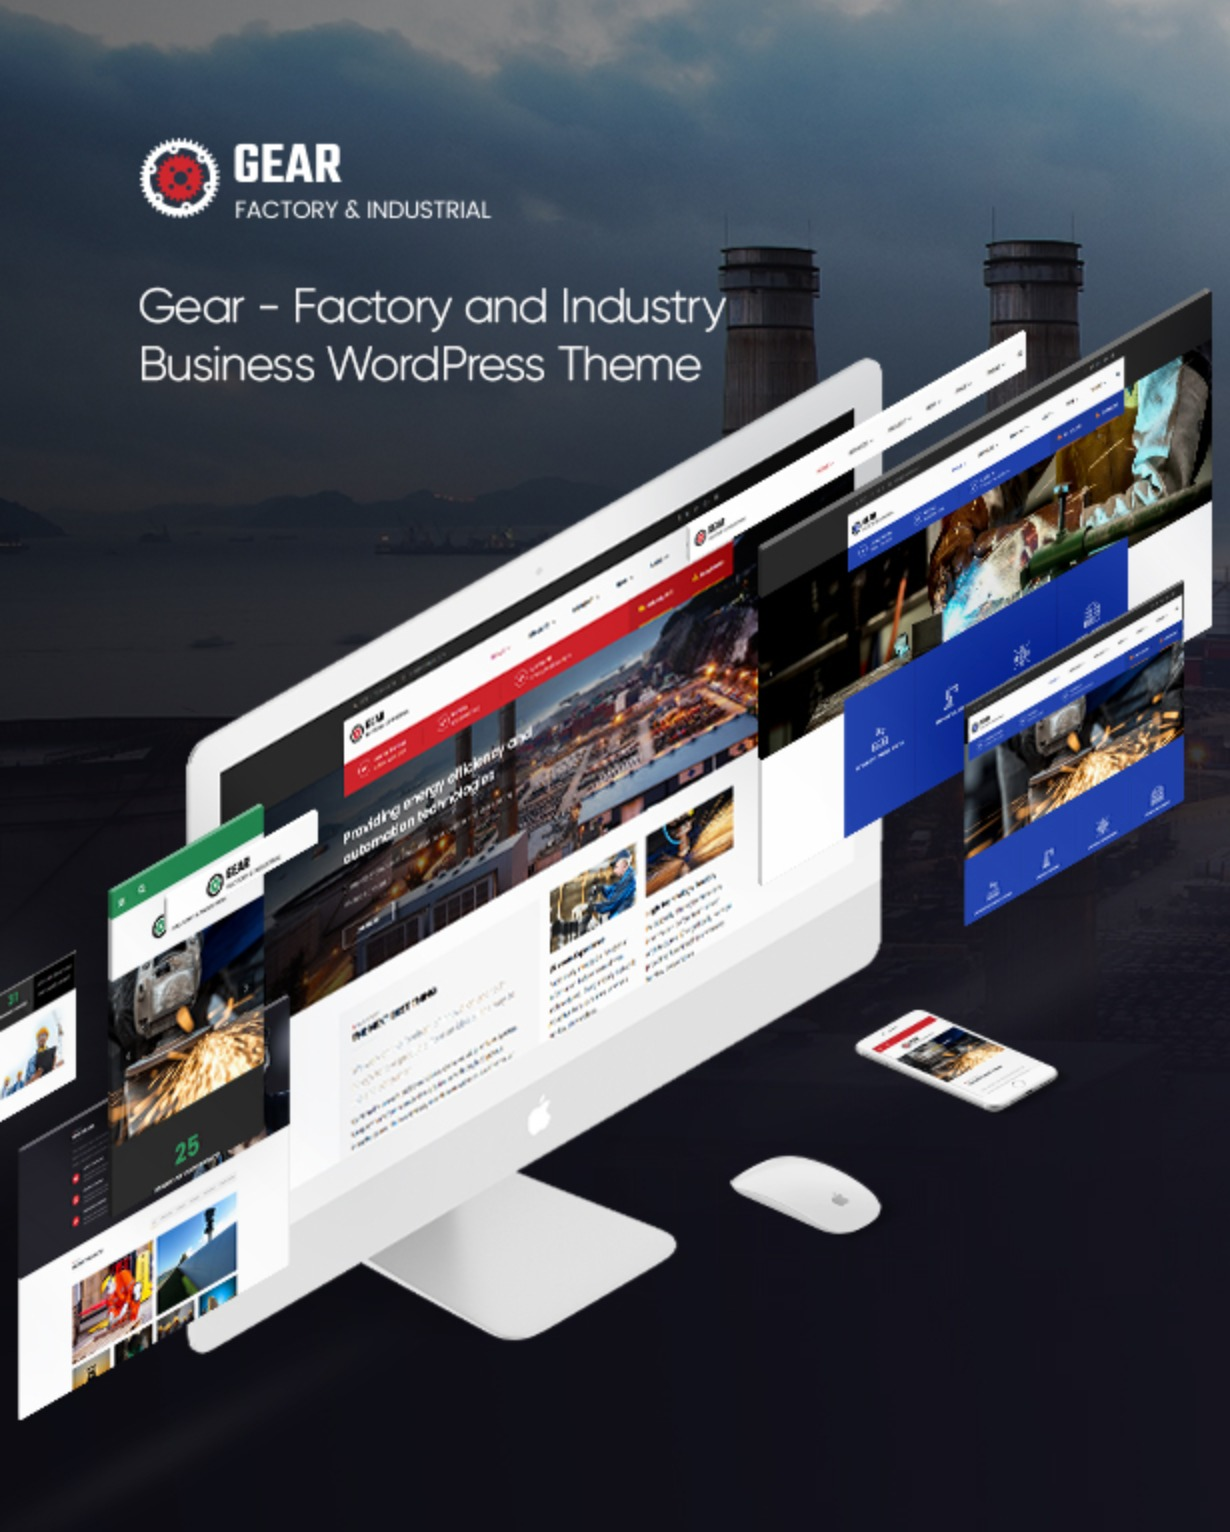 Gear - Factory and Industry Business WordPress Theme